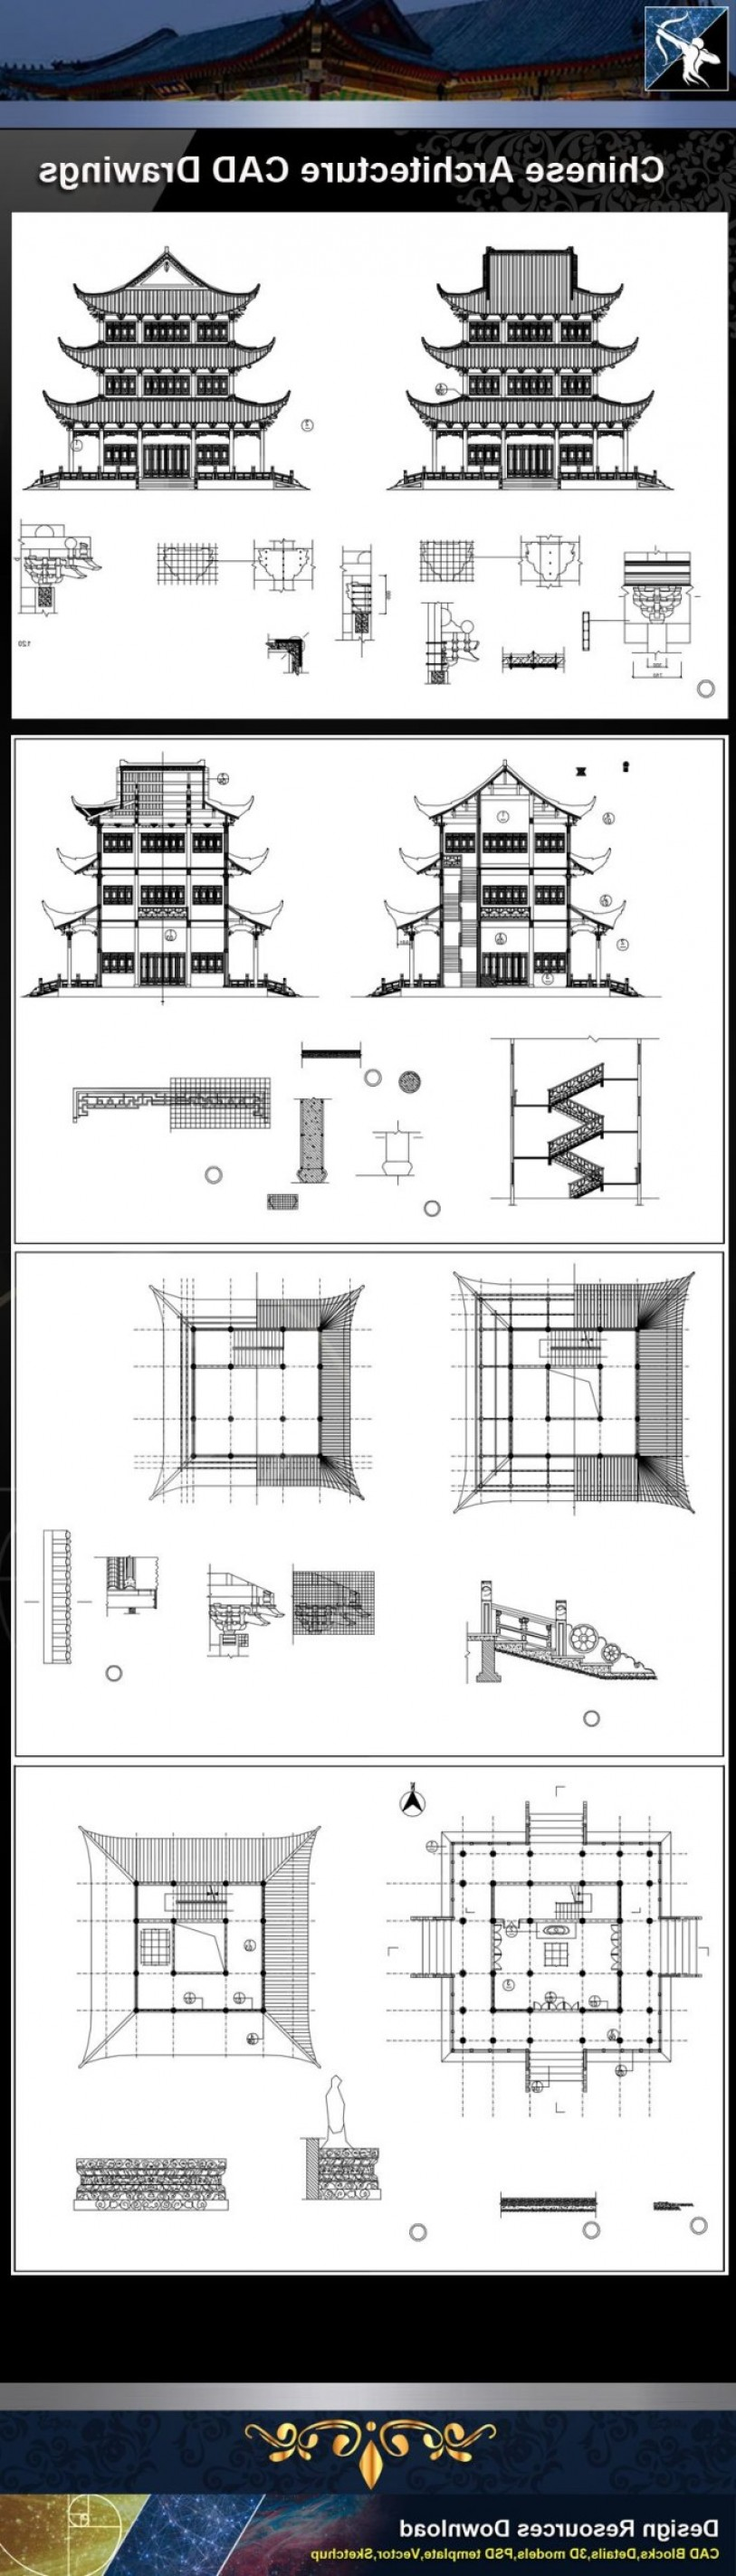 Falcon 50 Vector 2D CAD Drawings: Eechinese Architecture Cad Drawingsechinese Temple Drawingscad Detailselevation V